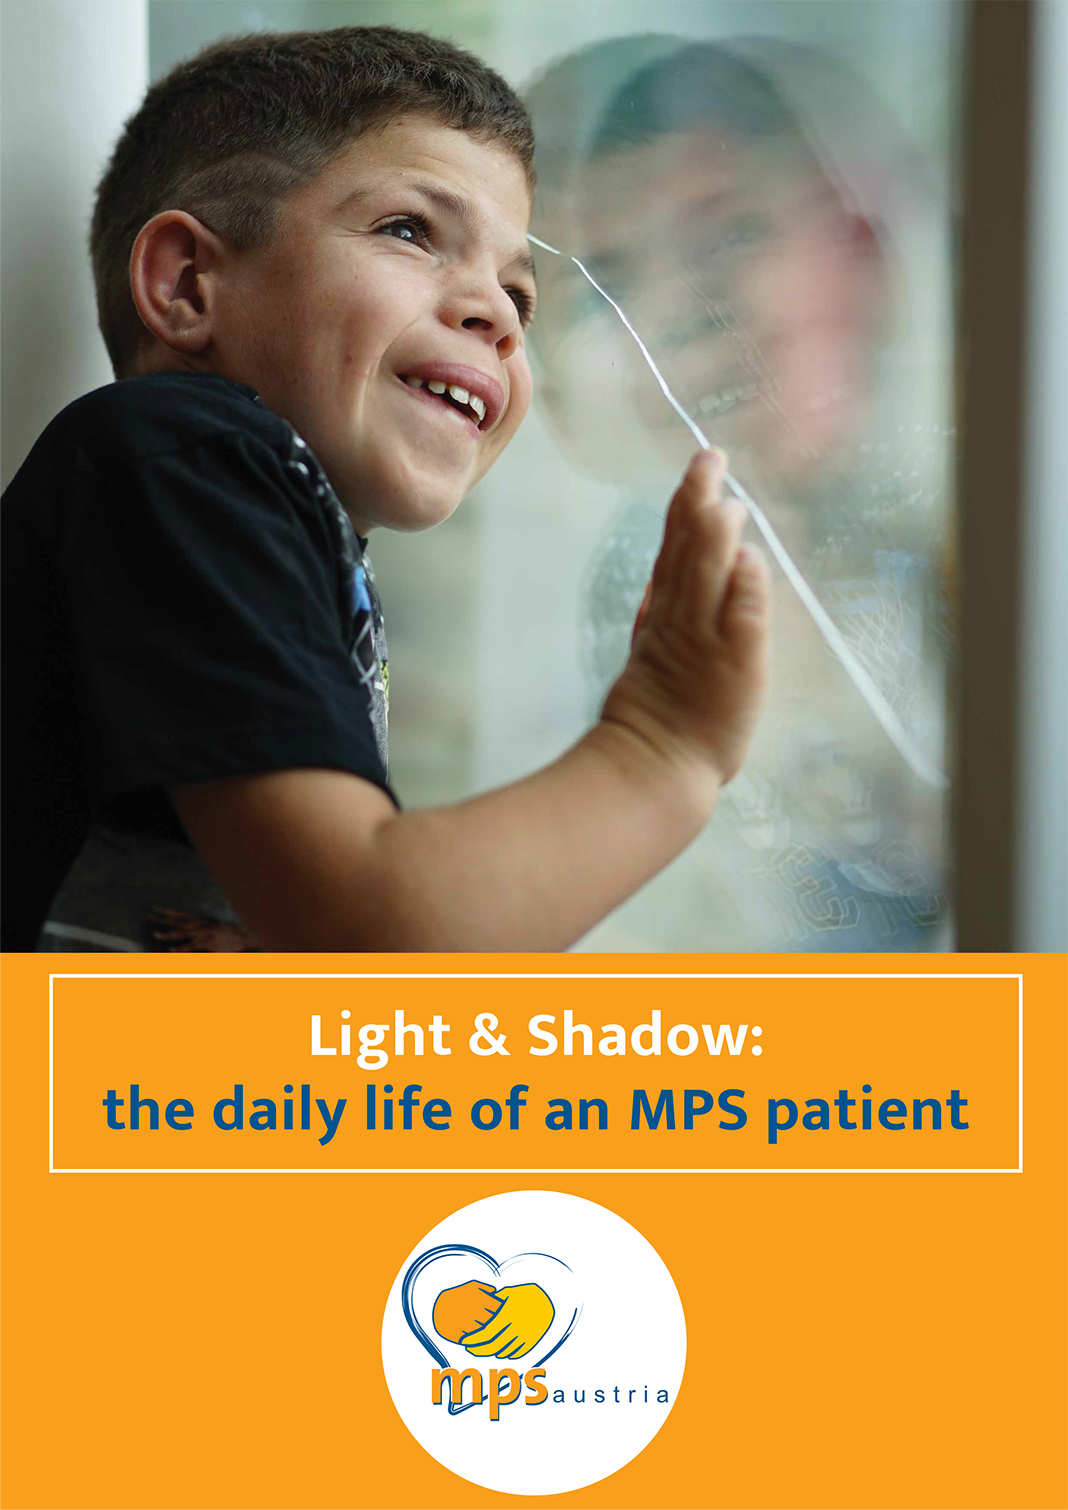 Explore the daily life of an MPS patient through advancing MPS research